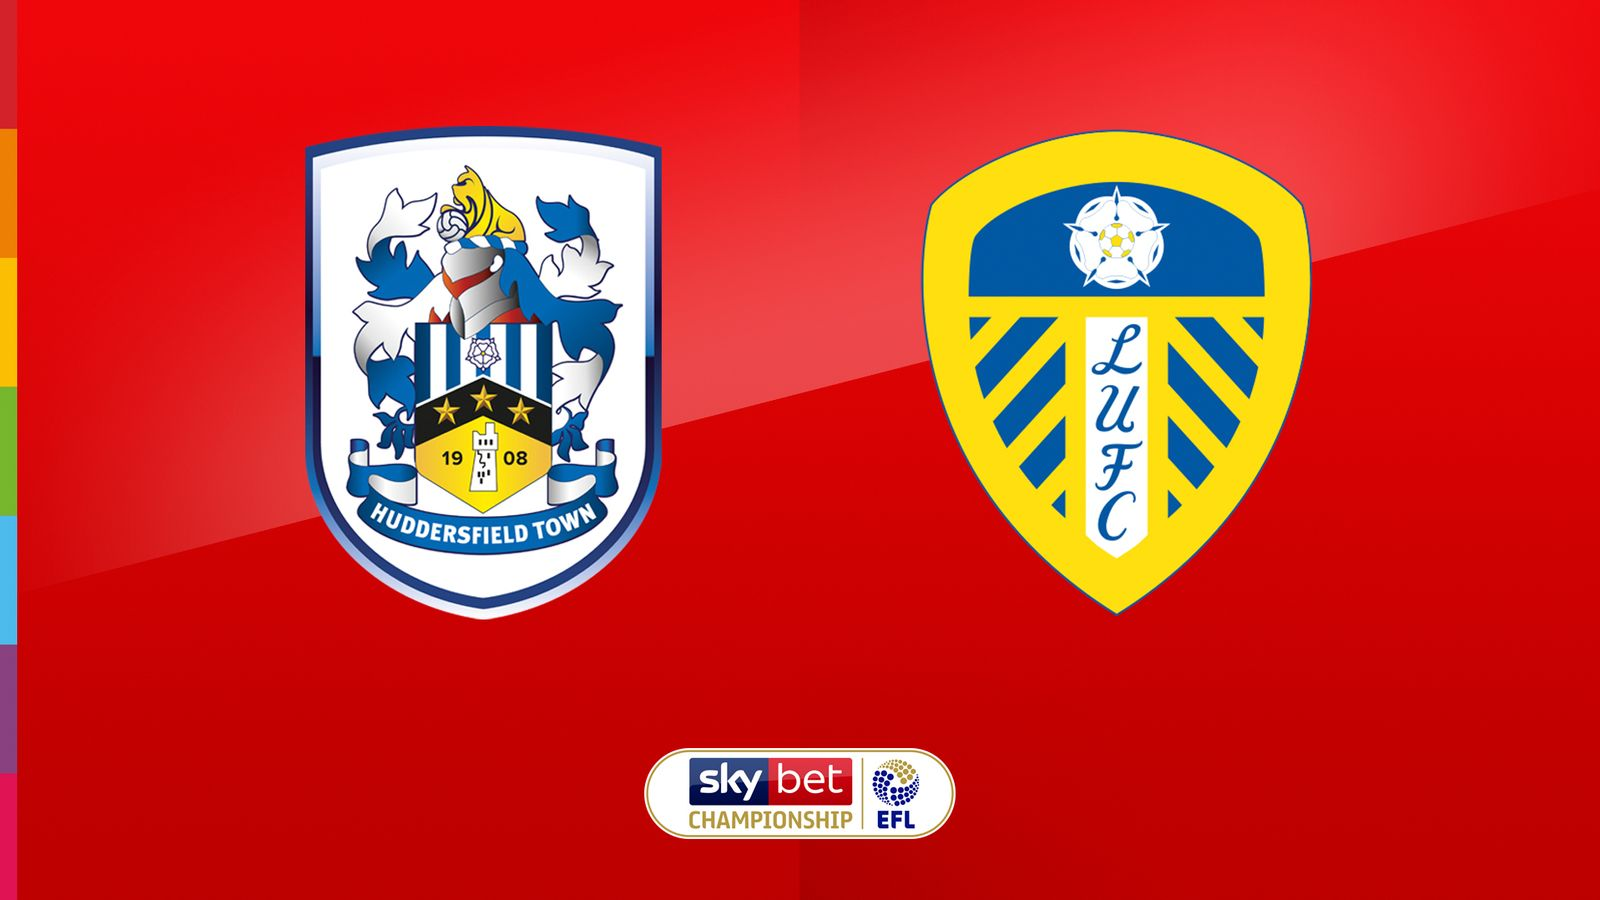 Huddersfield vs Leeds preview: Championship clash live on Sky Sports Football